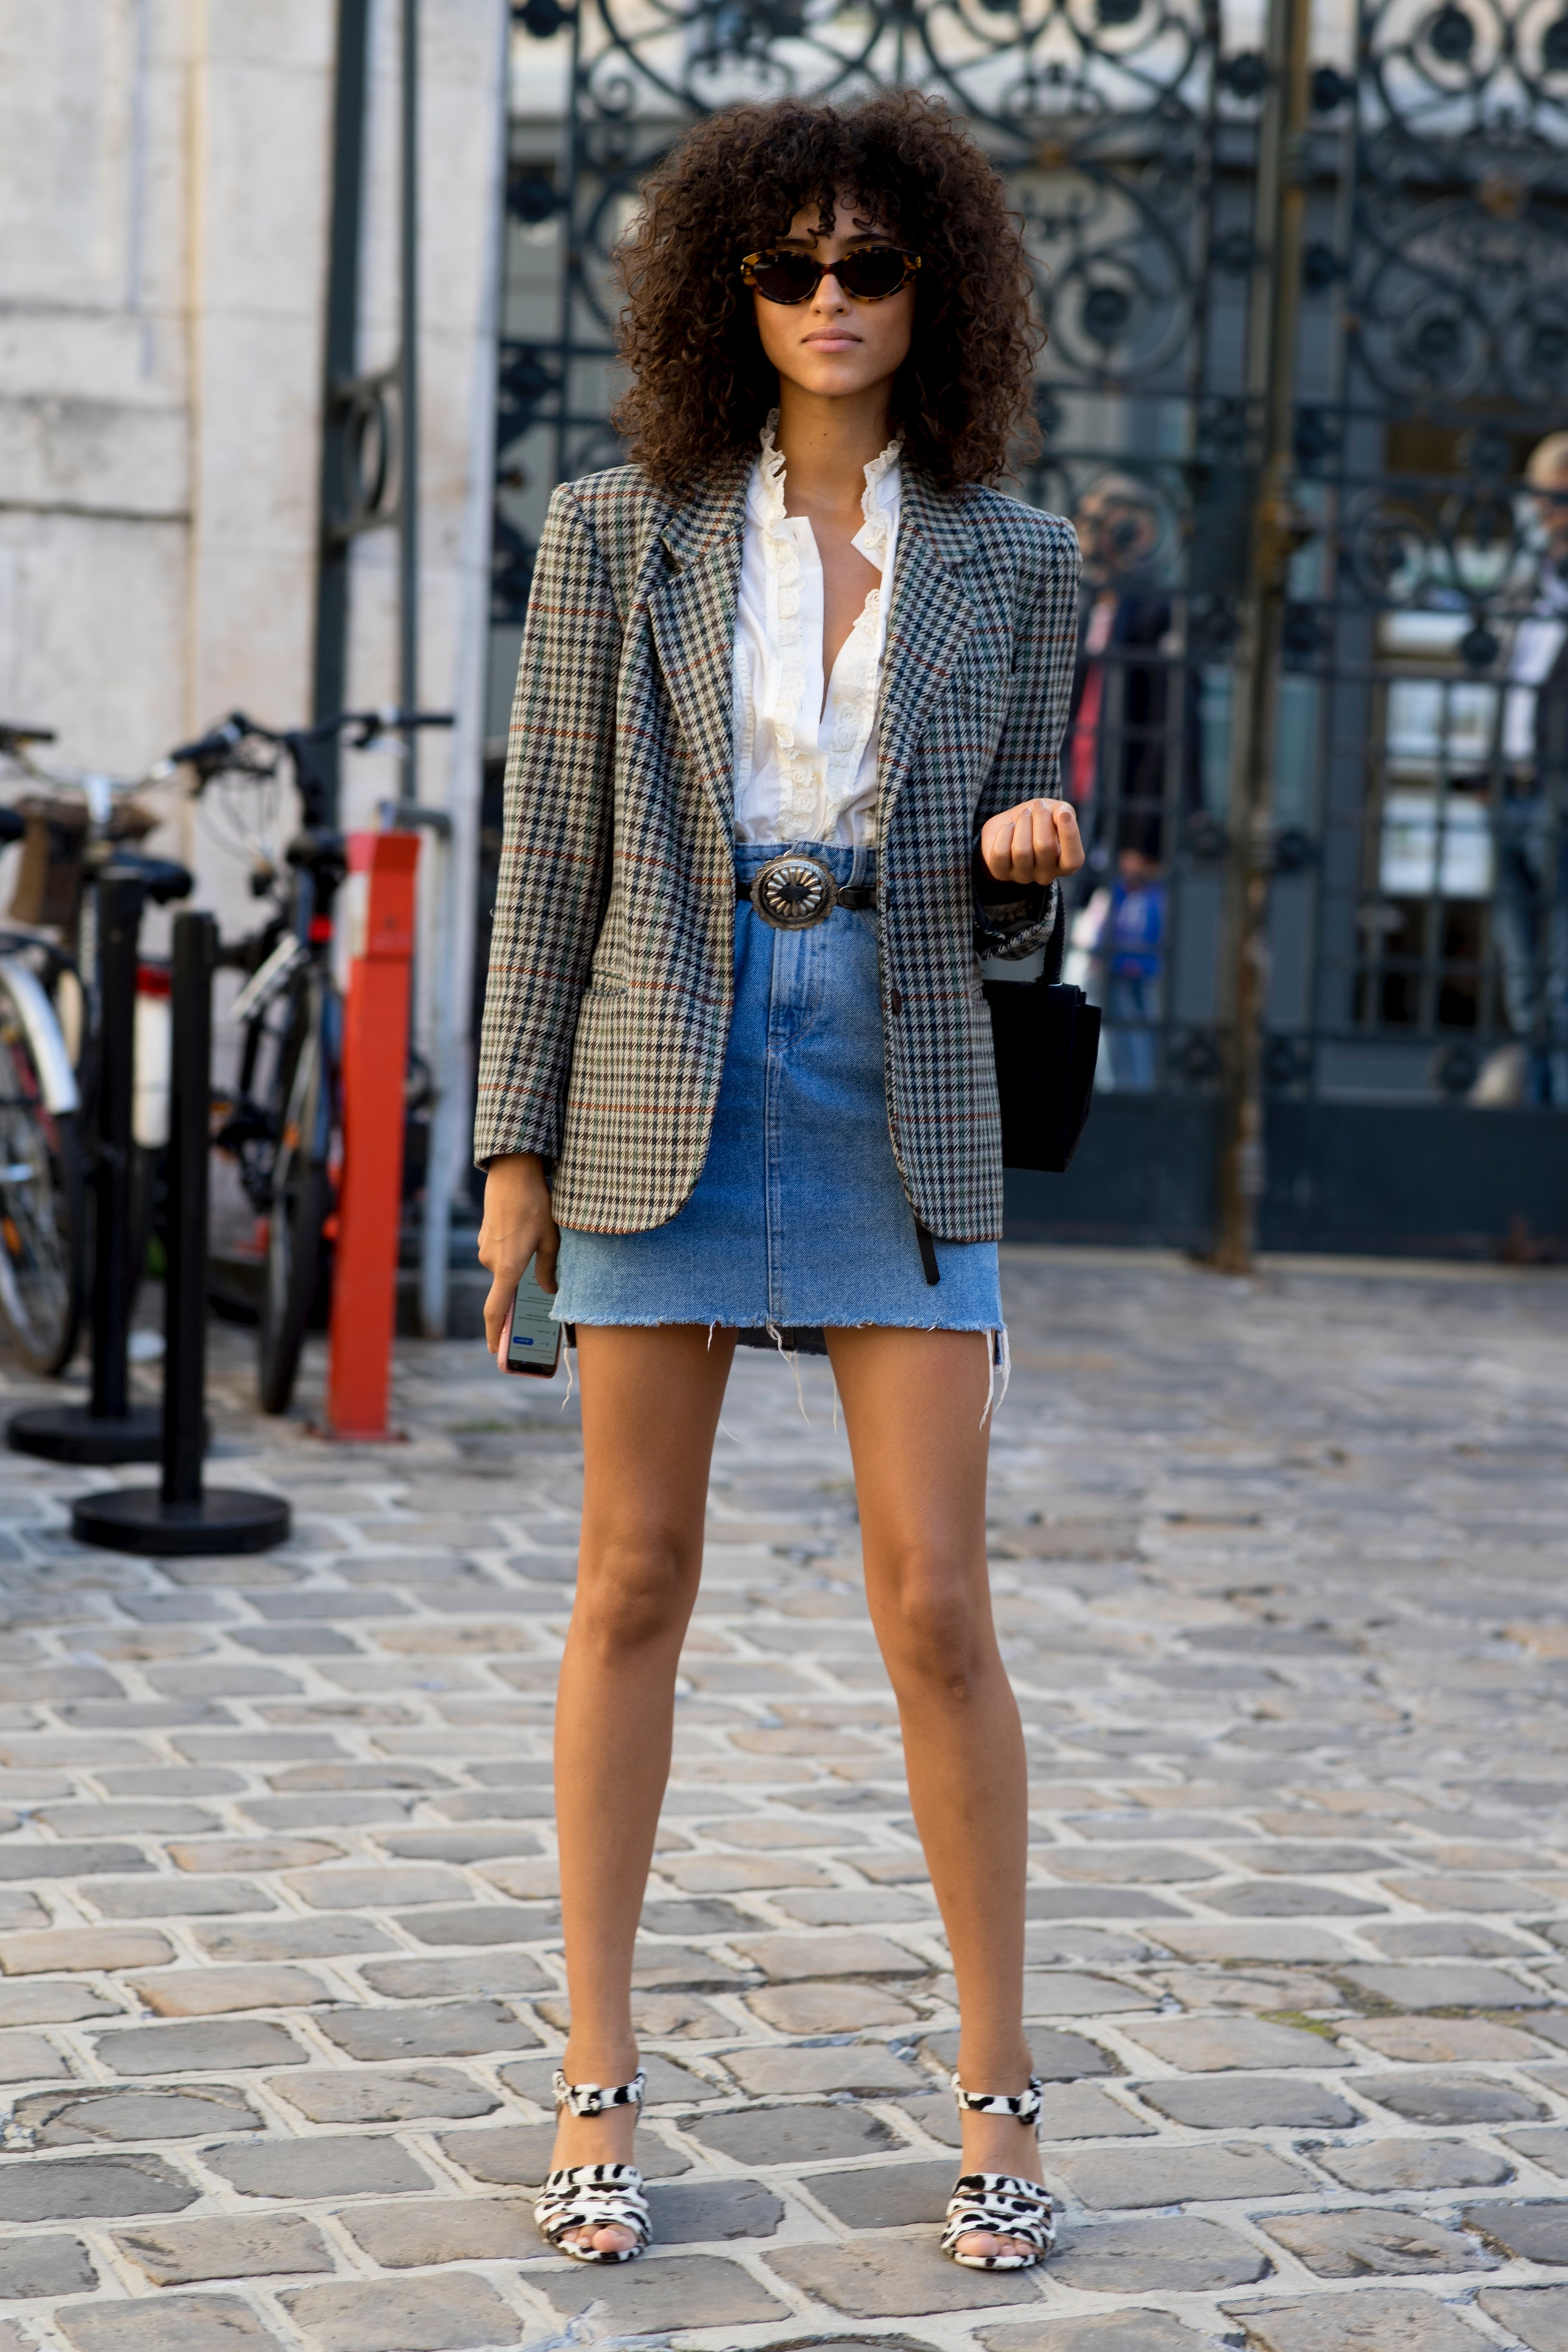 98cde3ed1 The Best Street Style From Paris Fashion Week Spring 2019